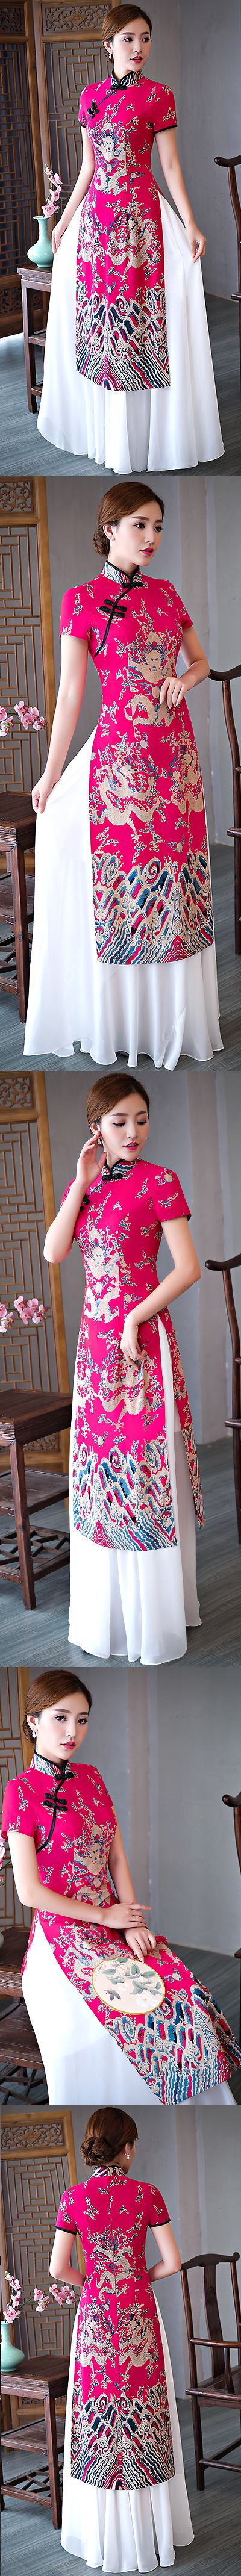 Magnificent Vietnamese National Outfit - Aodai (CM)